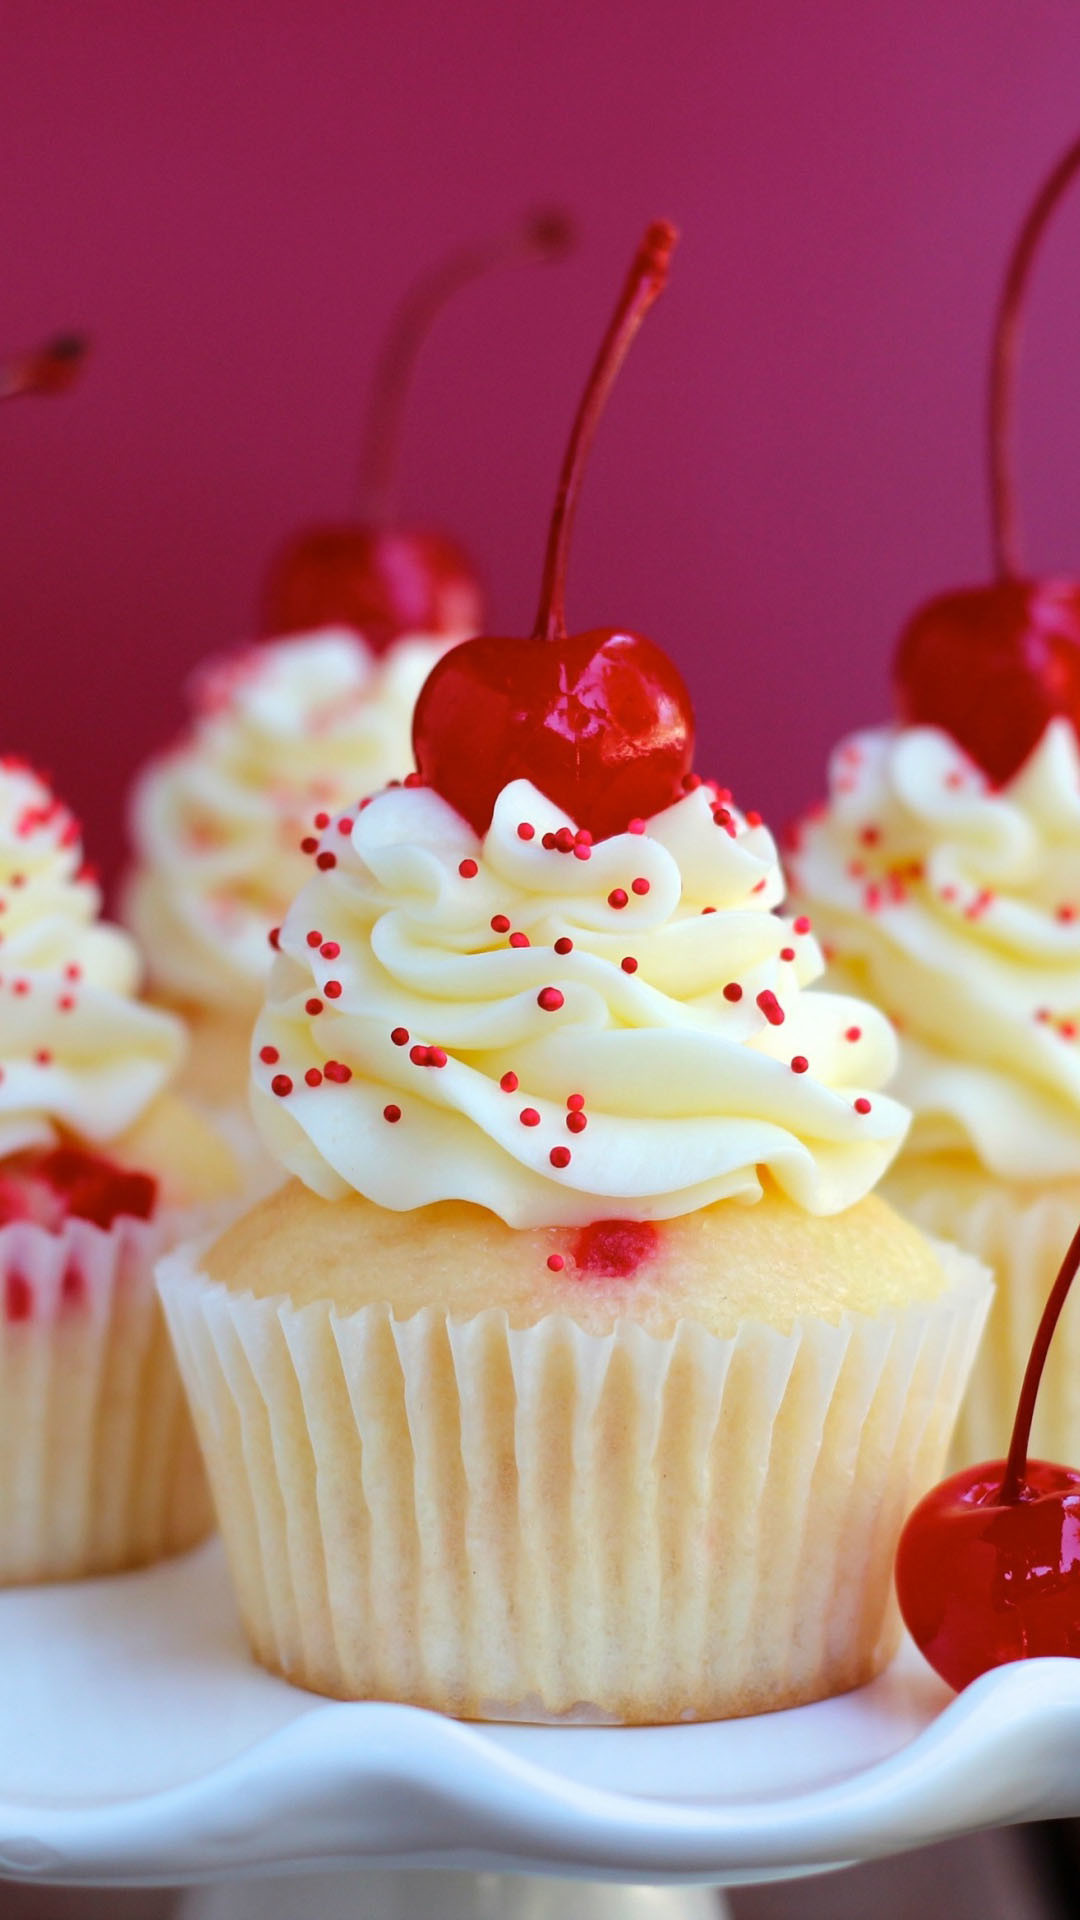 Pink Girly Wallpaper Iphone Cute Cupcake Background 183 ①